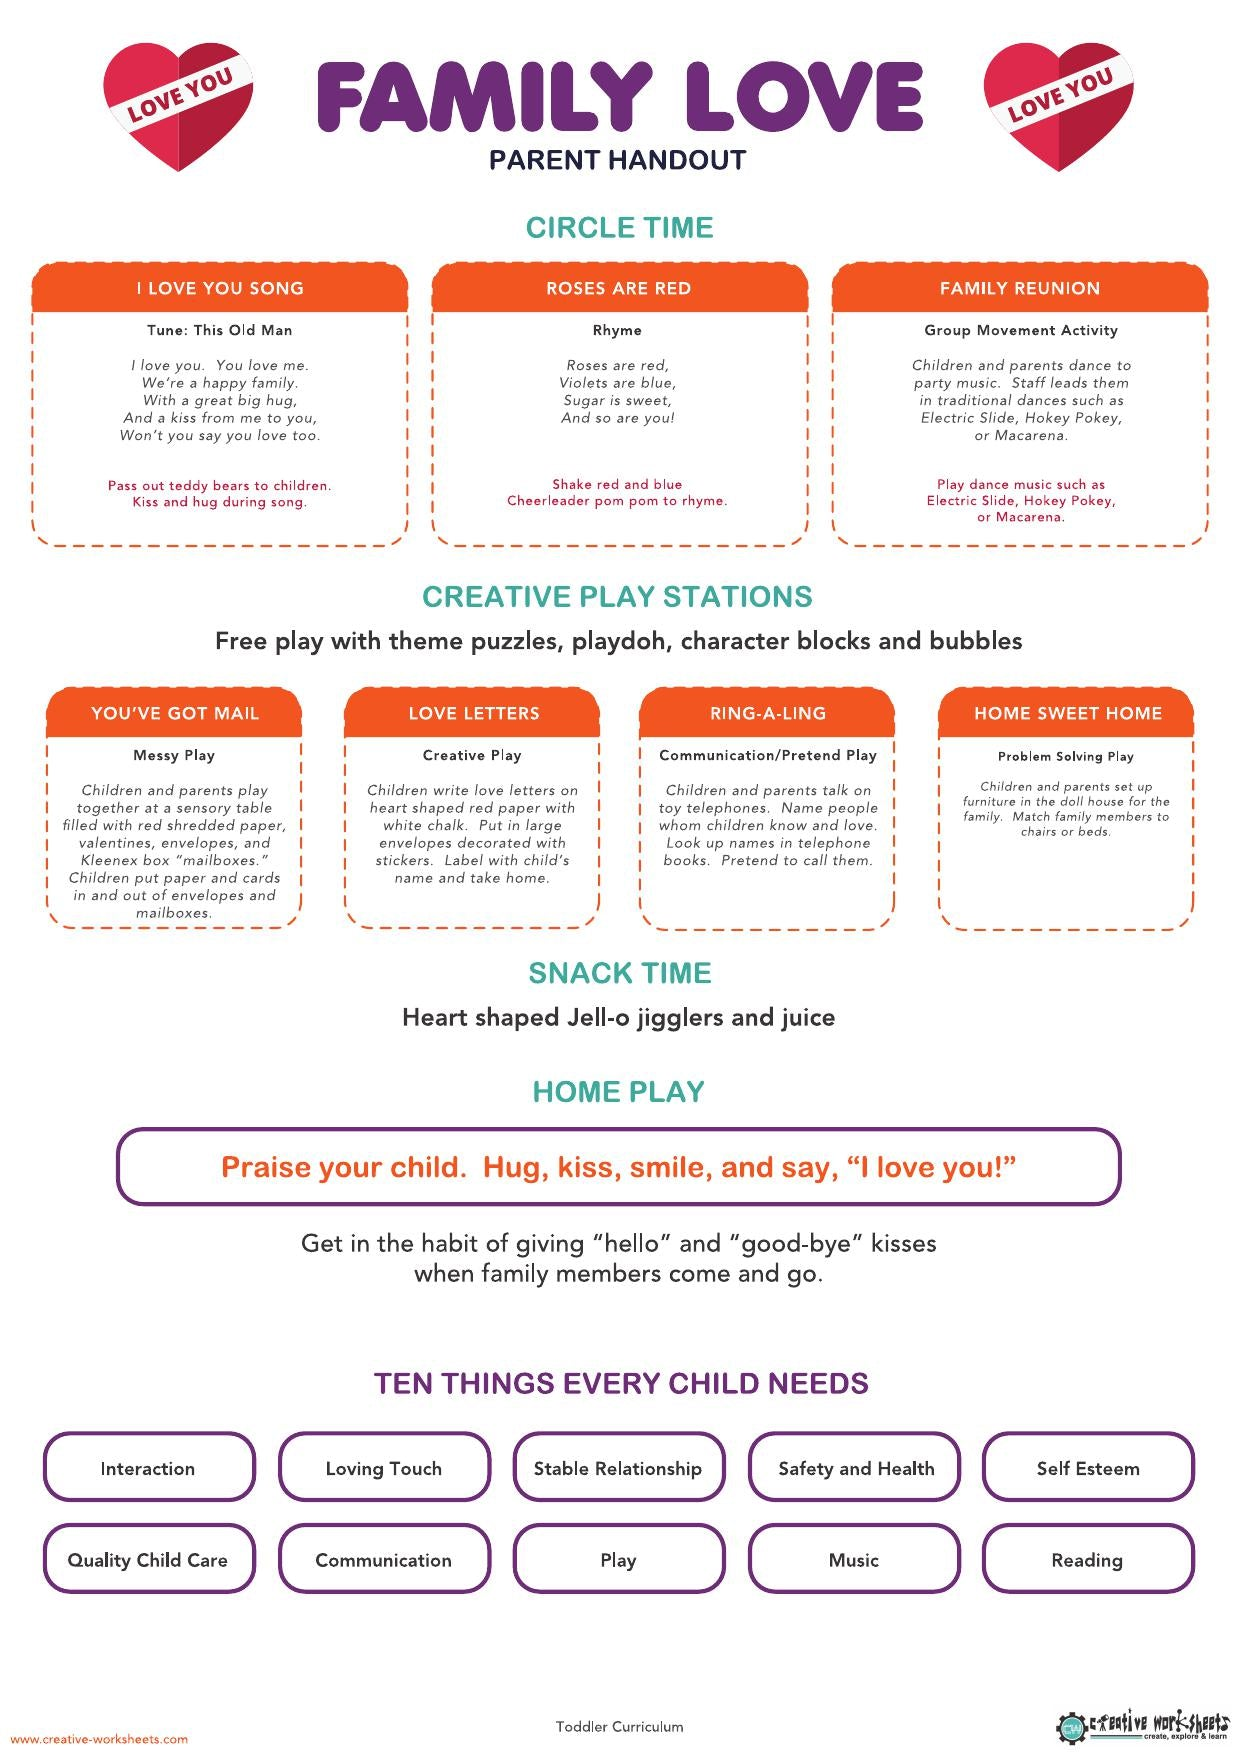 FAMILY LOVE - TODDLER CURRICULUM - CreativeWorksheets